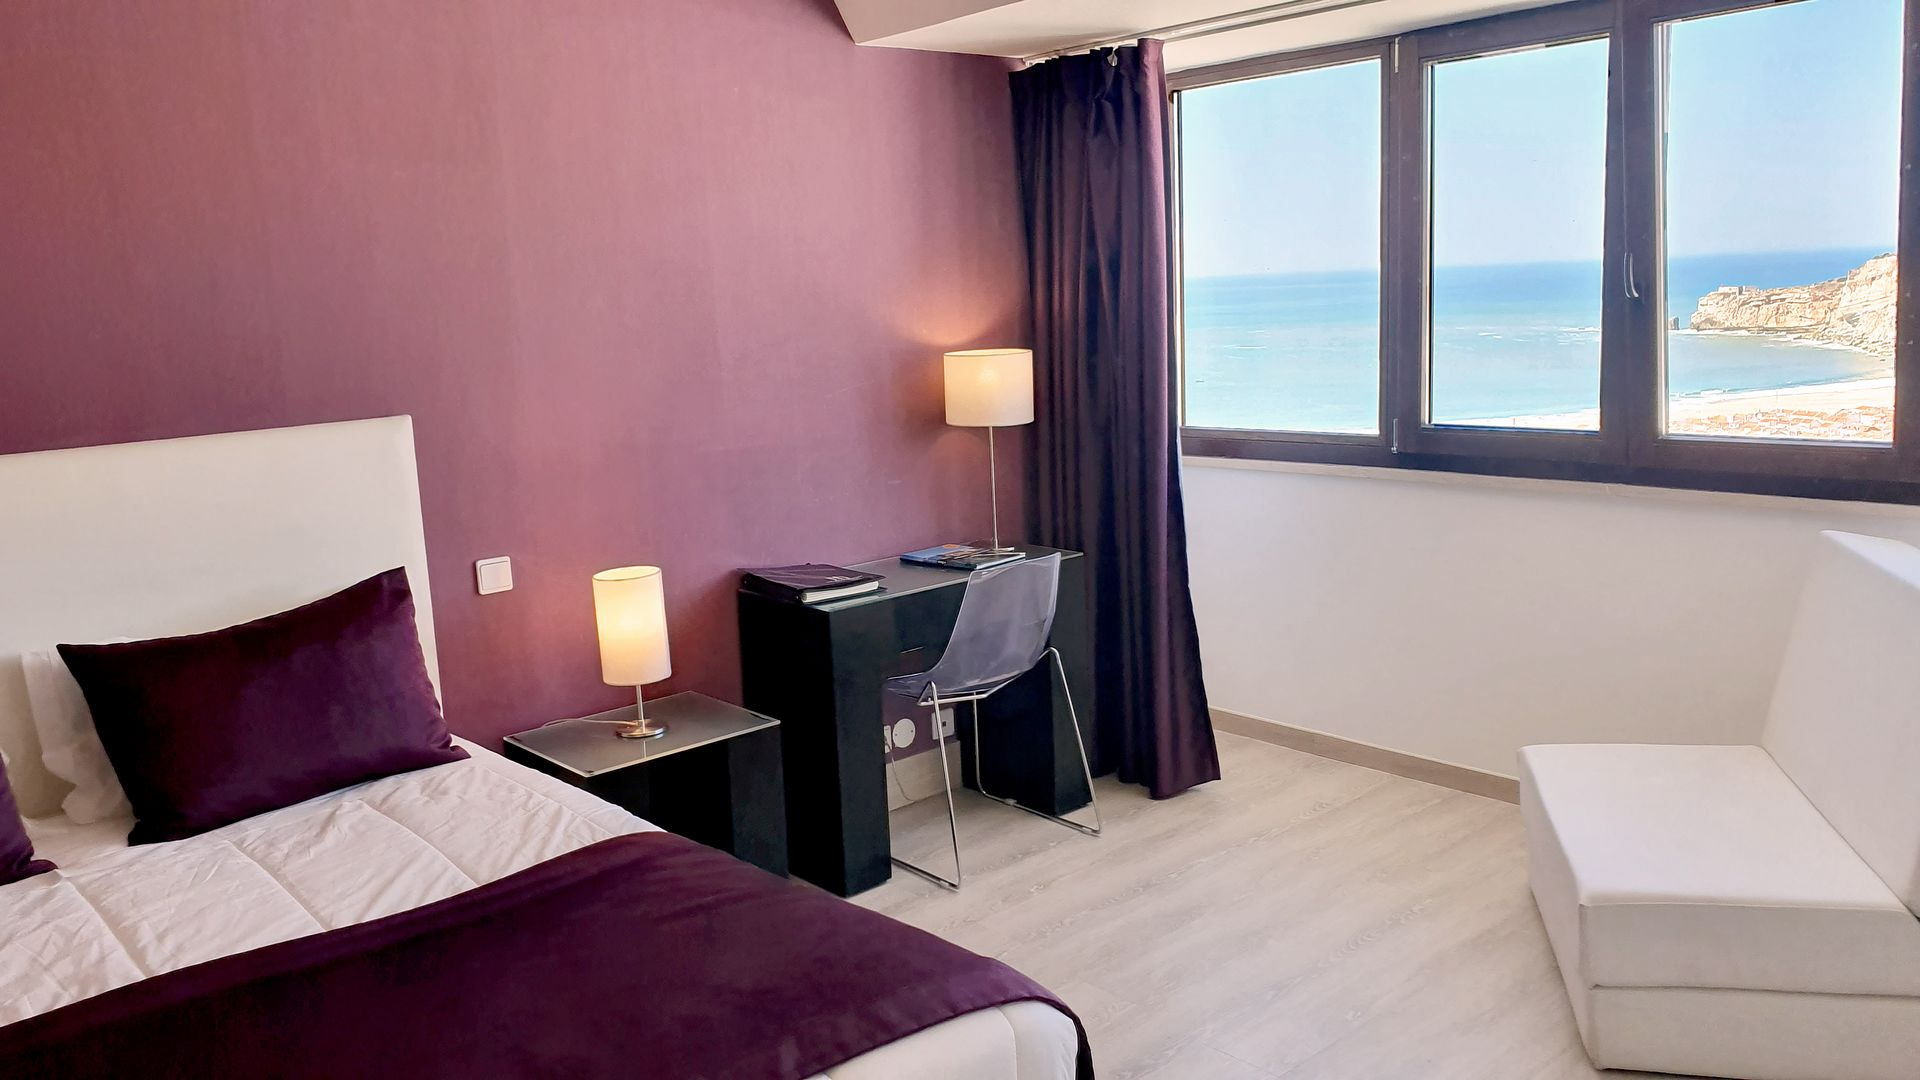 Nazare-Miramar-hotel-spa-quarto-vista-mar